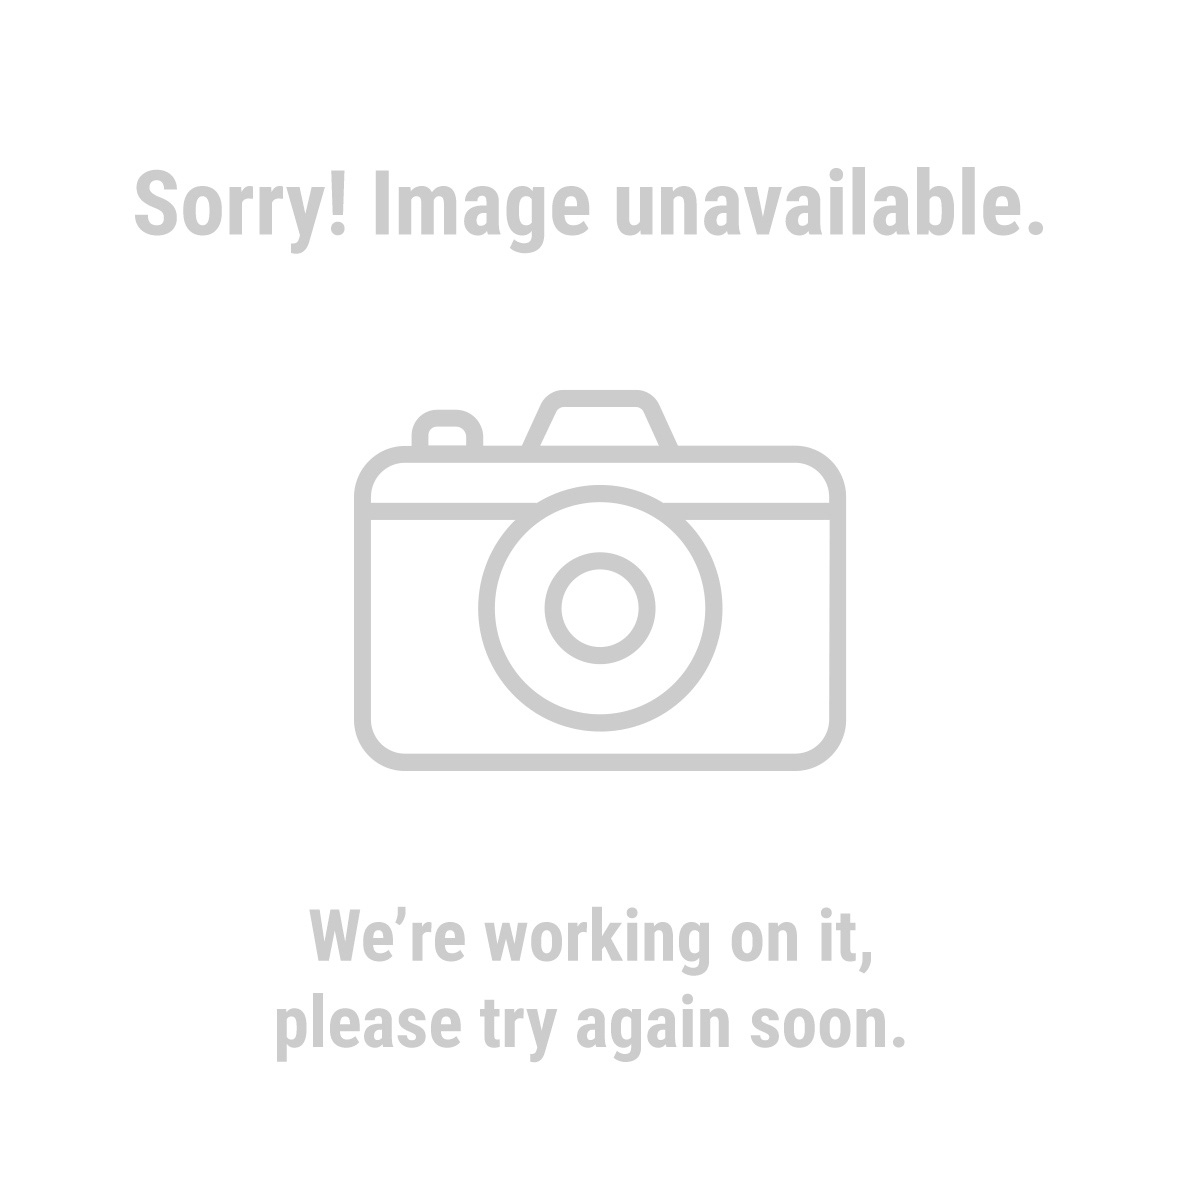 Chicago Electric Power Tools 61969 12 in. Double-Bevel Sliding Compound Miter Saw With Laser Guide System